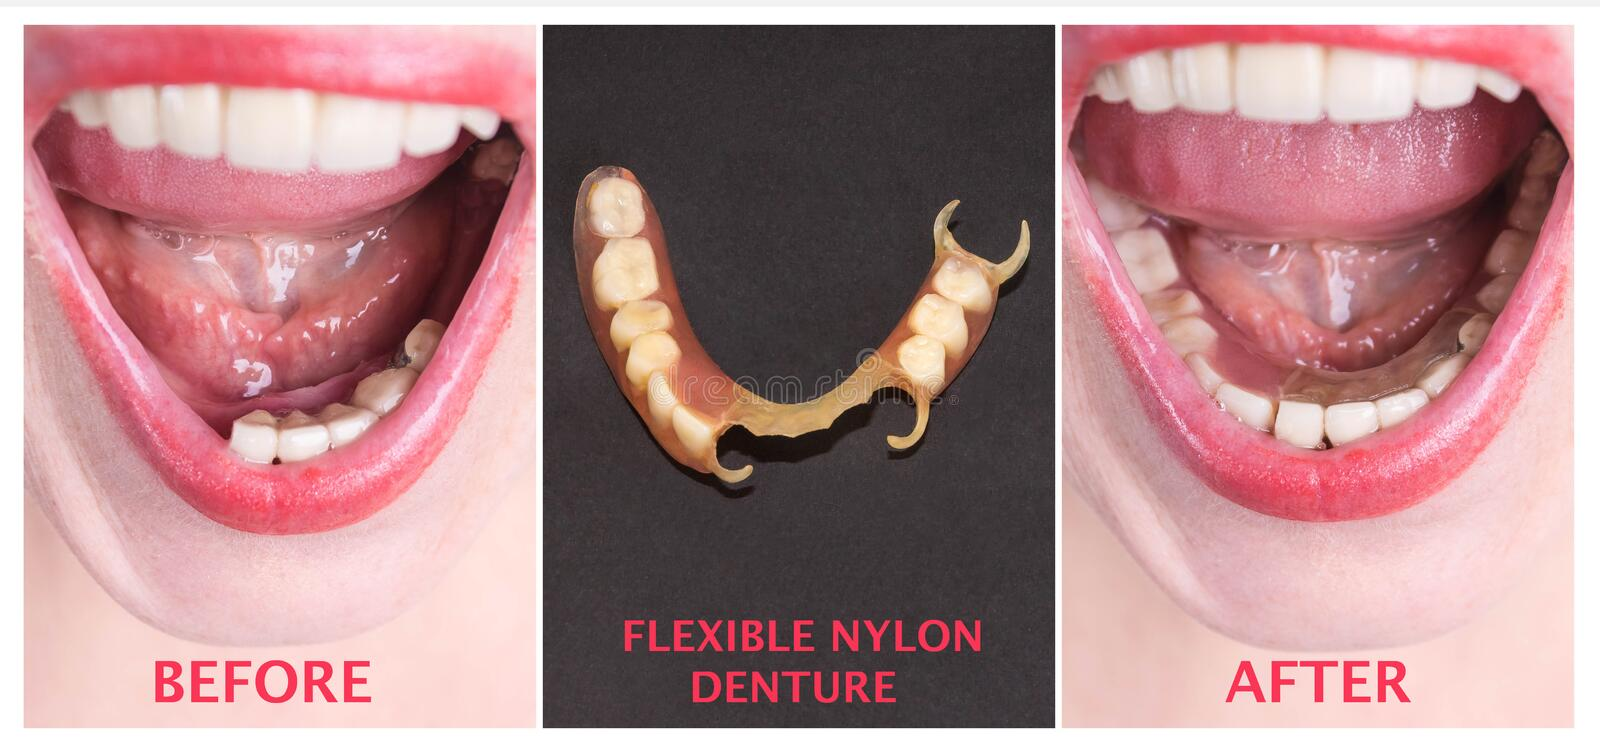 Dental rehabilitation with upper and lower prosthesis, before and after treatment. Dental rehabilitation with lower flexible nylon denture, before and after stock photos